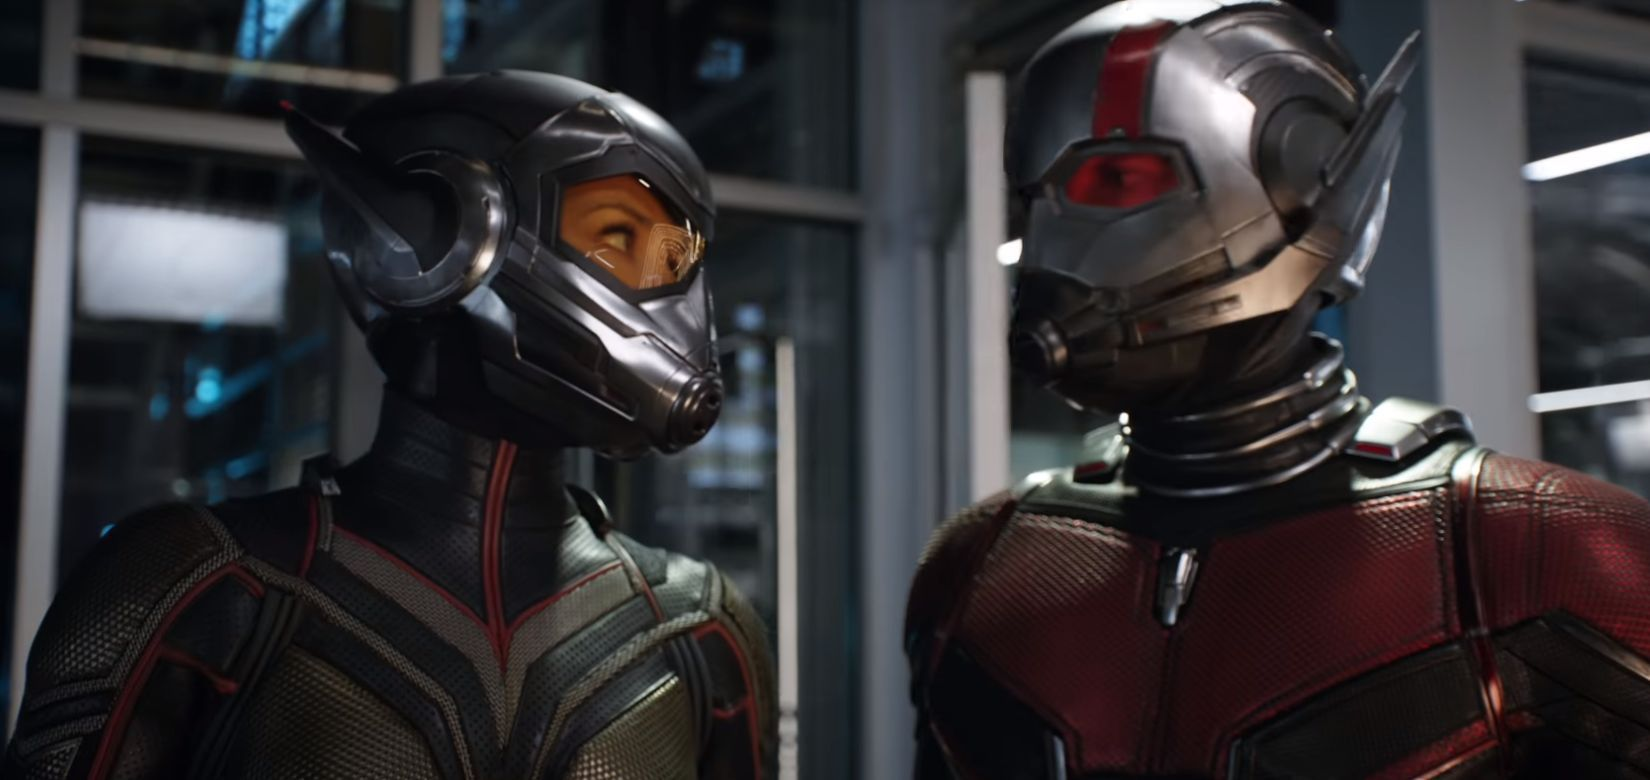 marvel-ant-man-3-ya-tendria-fecha-de-rodaje-segun-actor-de-la-saga